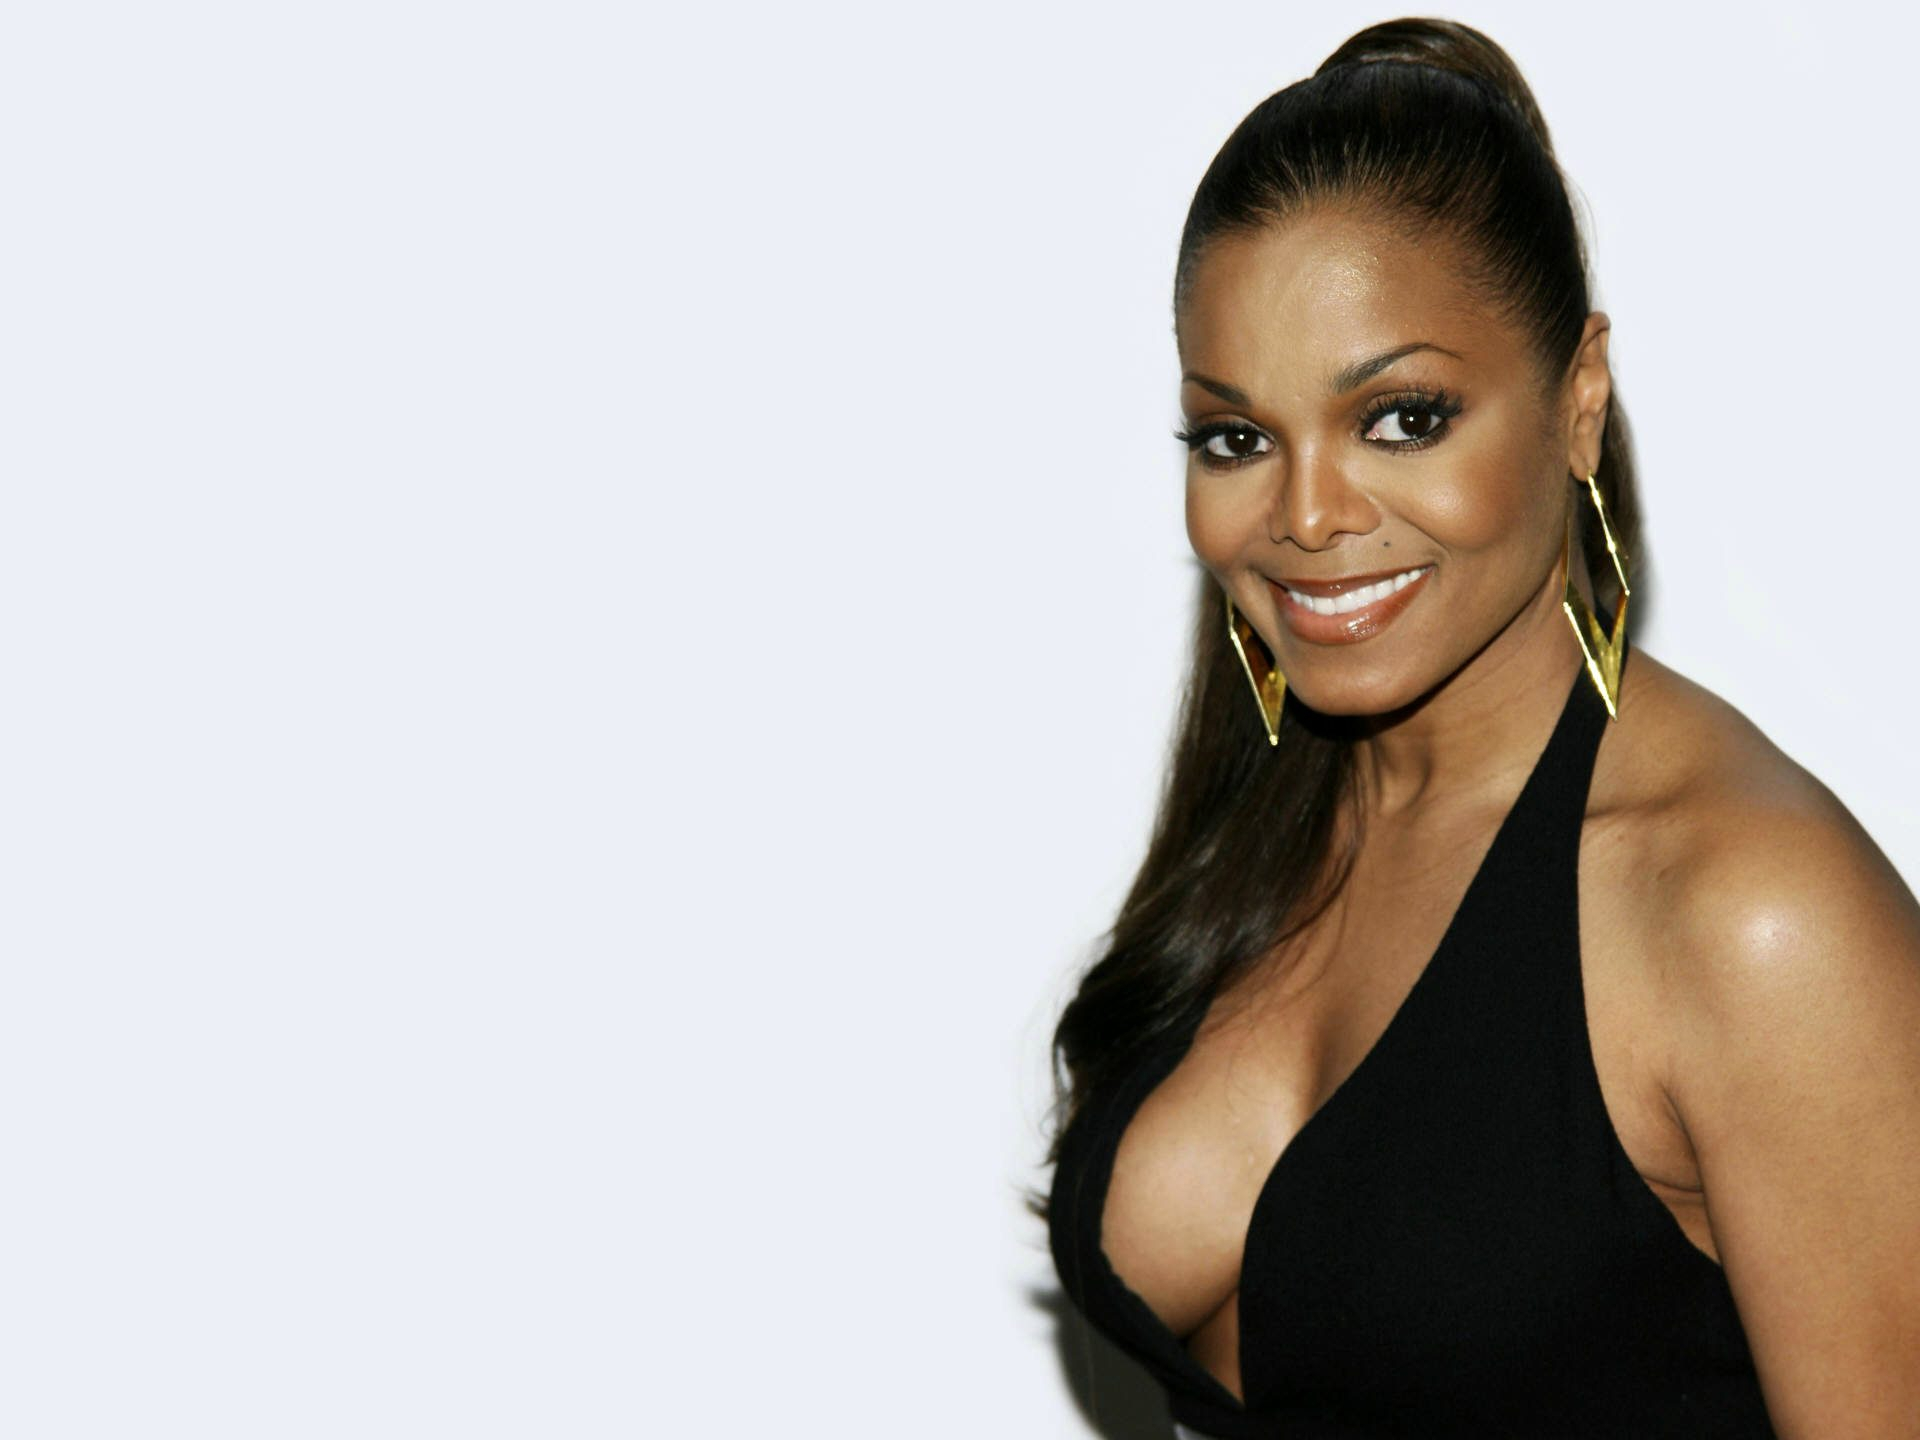 Janet Jackson Download Free Backgrounds Hd